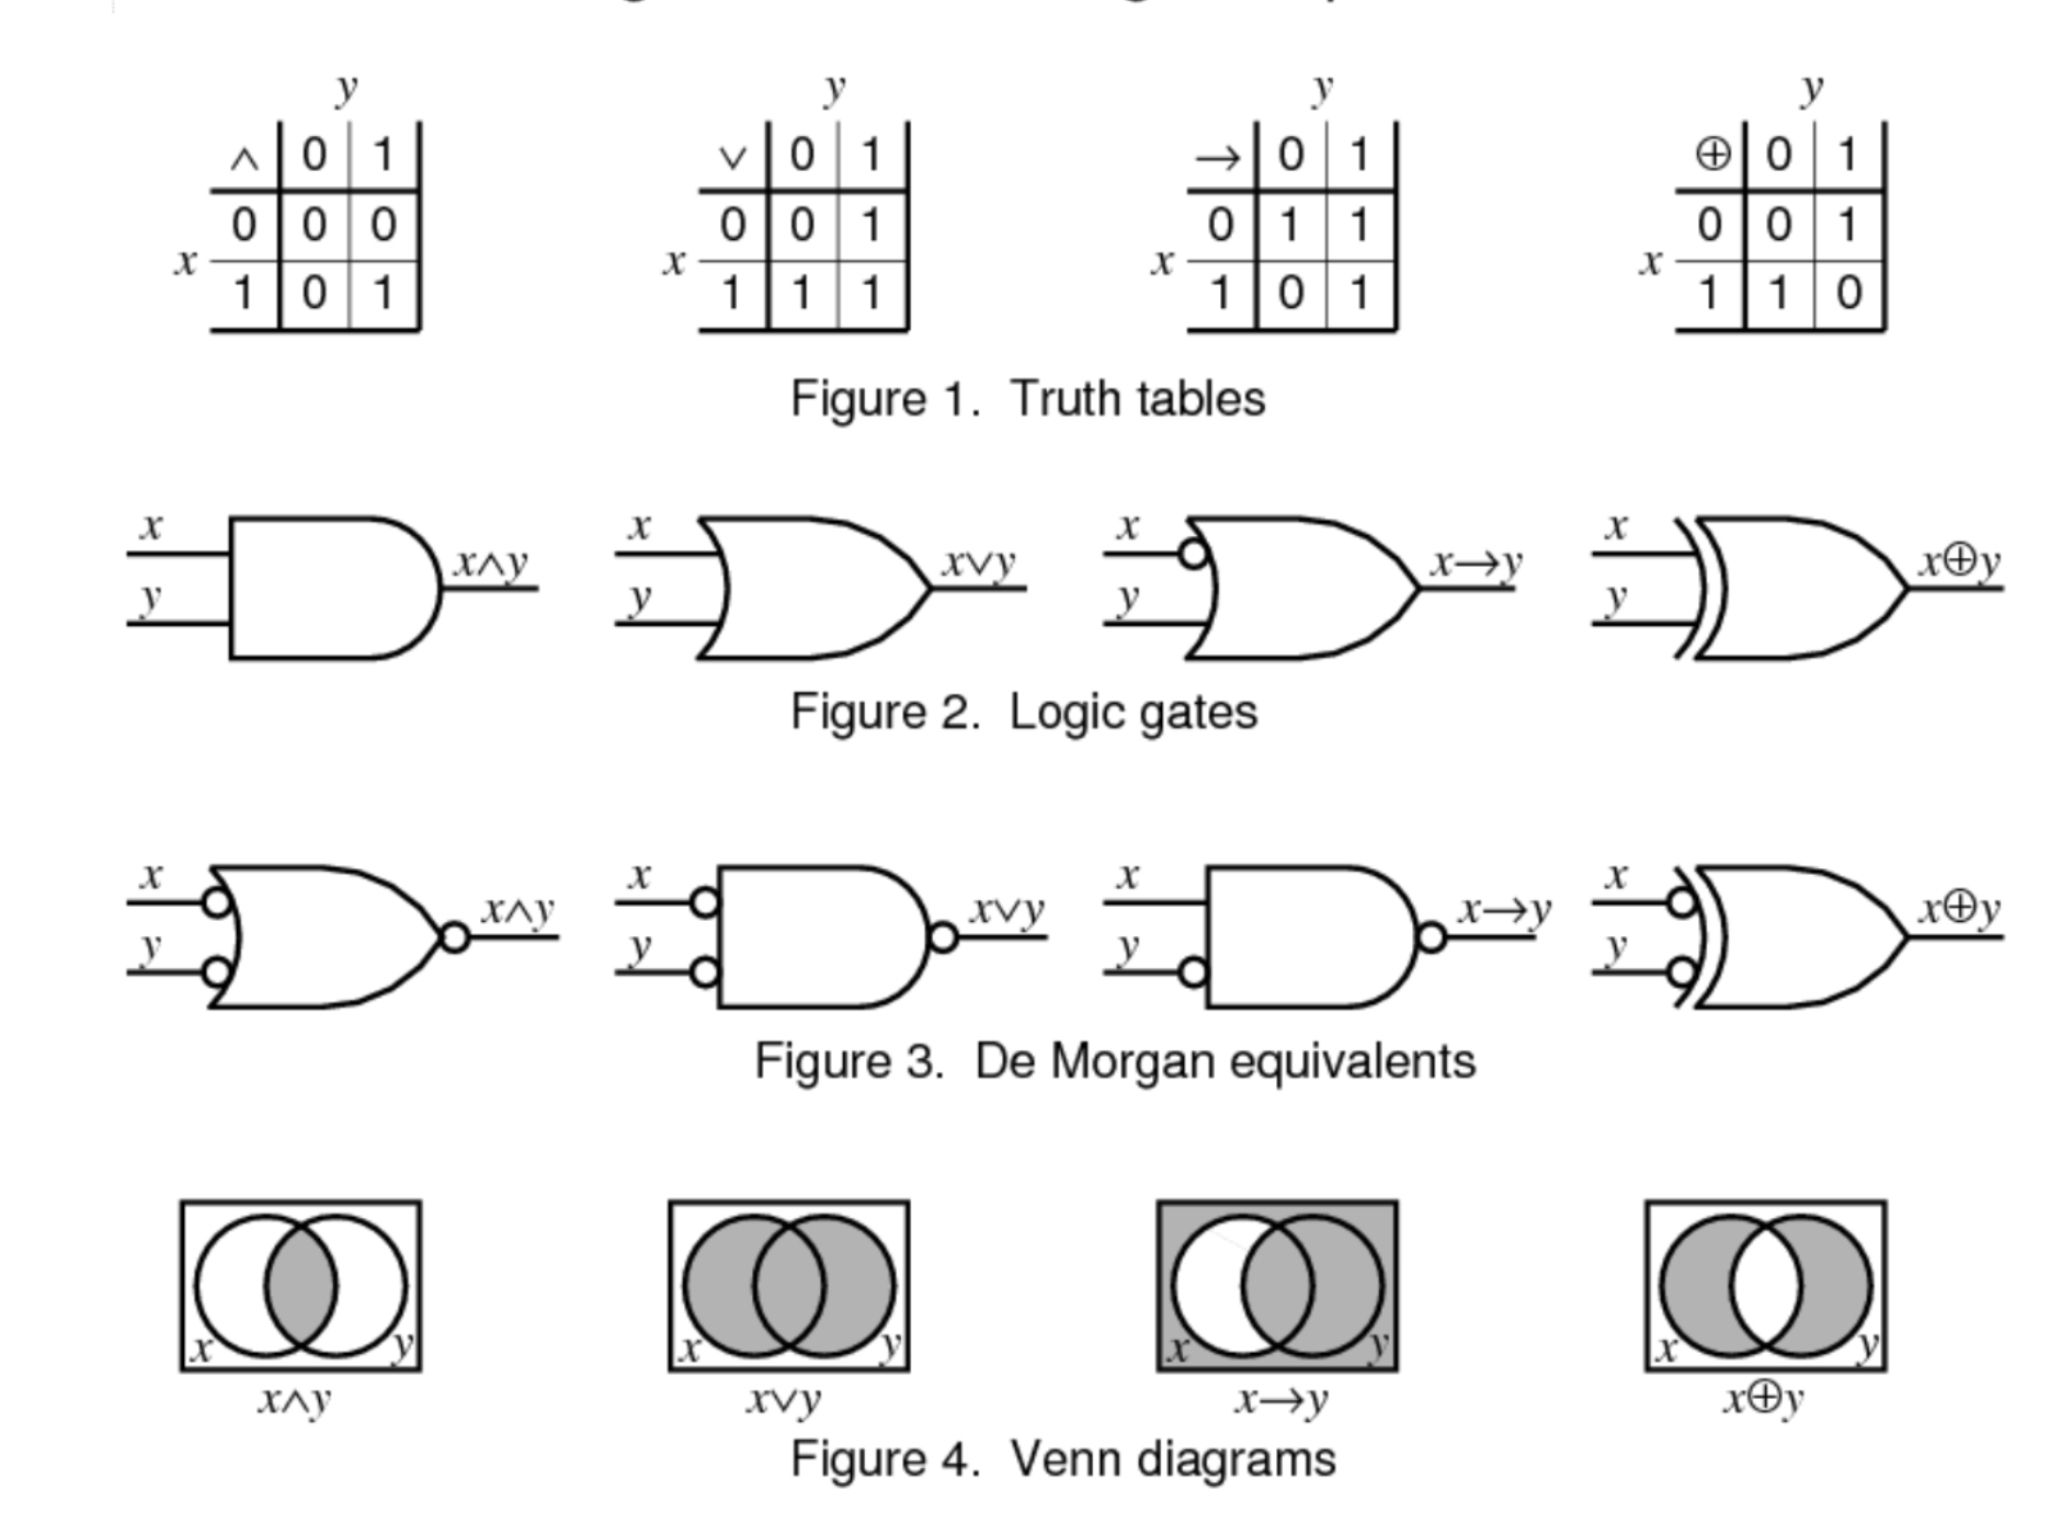 Booleon Logic Truth Tables Gates Venn Diagrams Digital Electrical Engineering